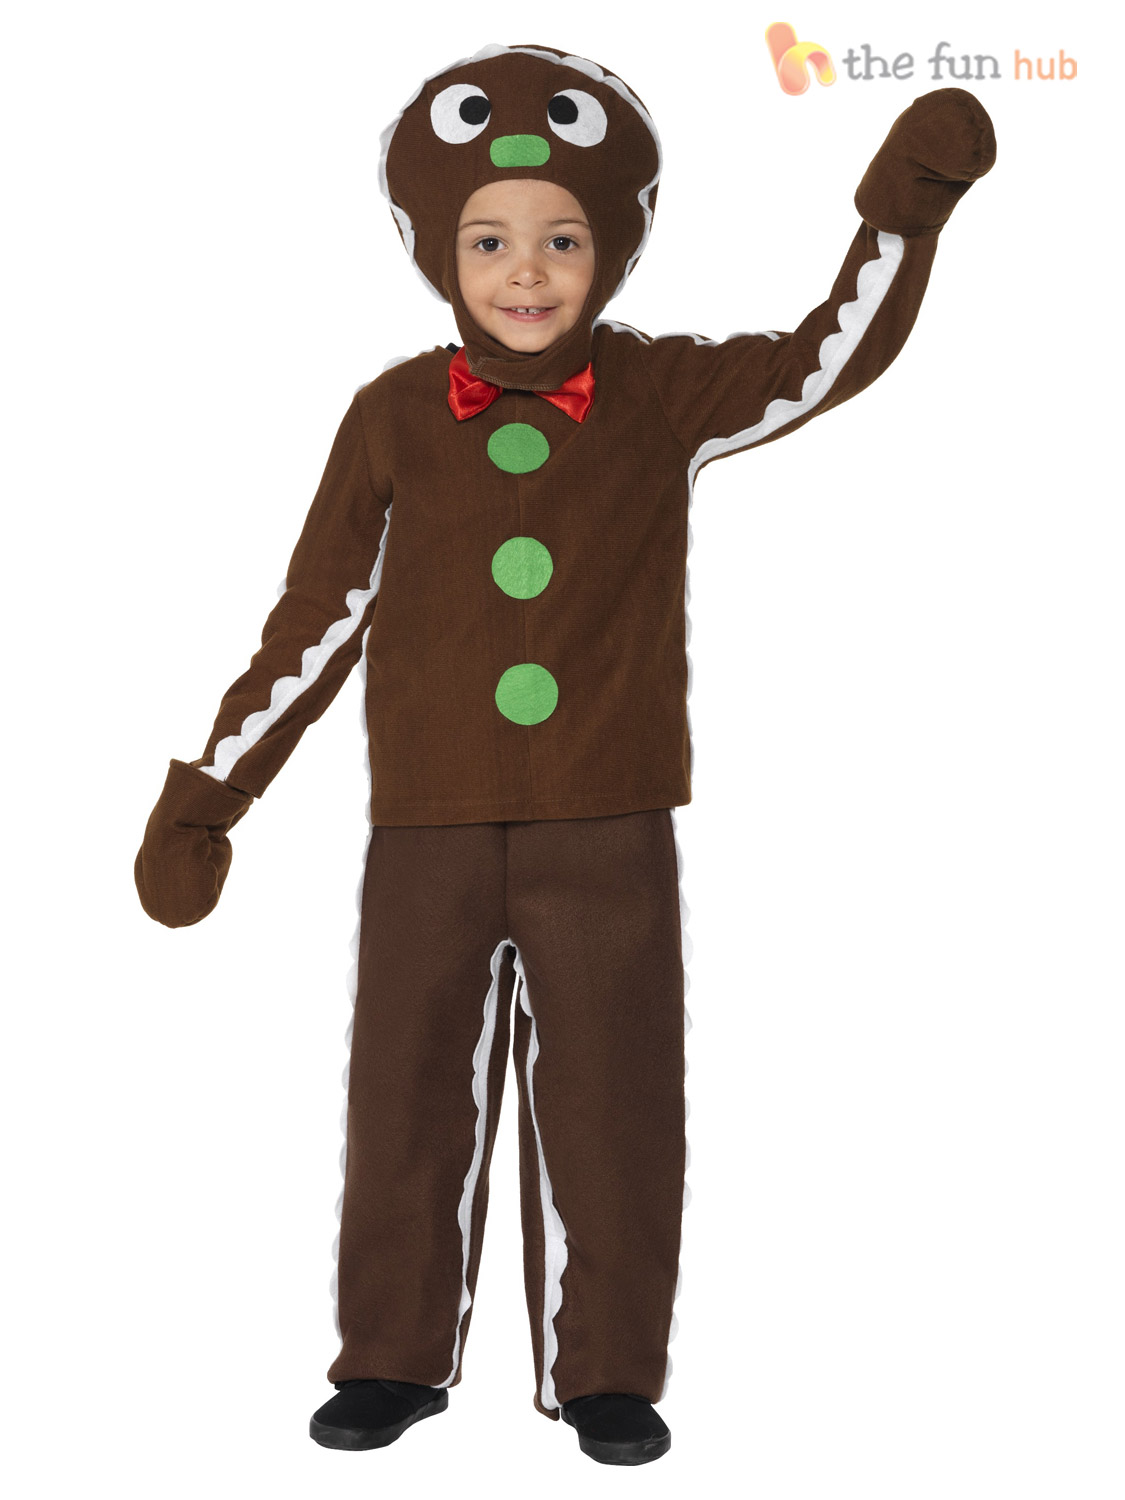 Be punchy with a christmas cracker costume, cute with a christmas pudding costume or cuddly with a Santa outfit - just a few suggestions from our outstanding range of Christmas fancy dress costumes. Whether you want to sparkle like a Christmas Tree or follow the star like a King, we have all the costumes you can imagine.